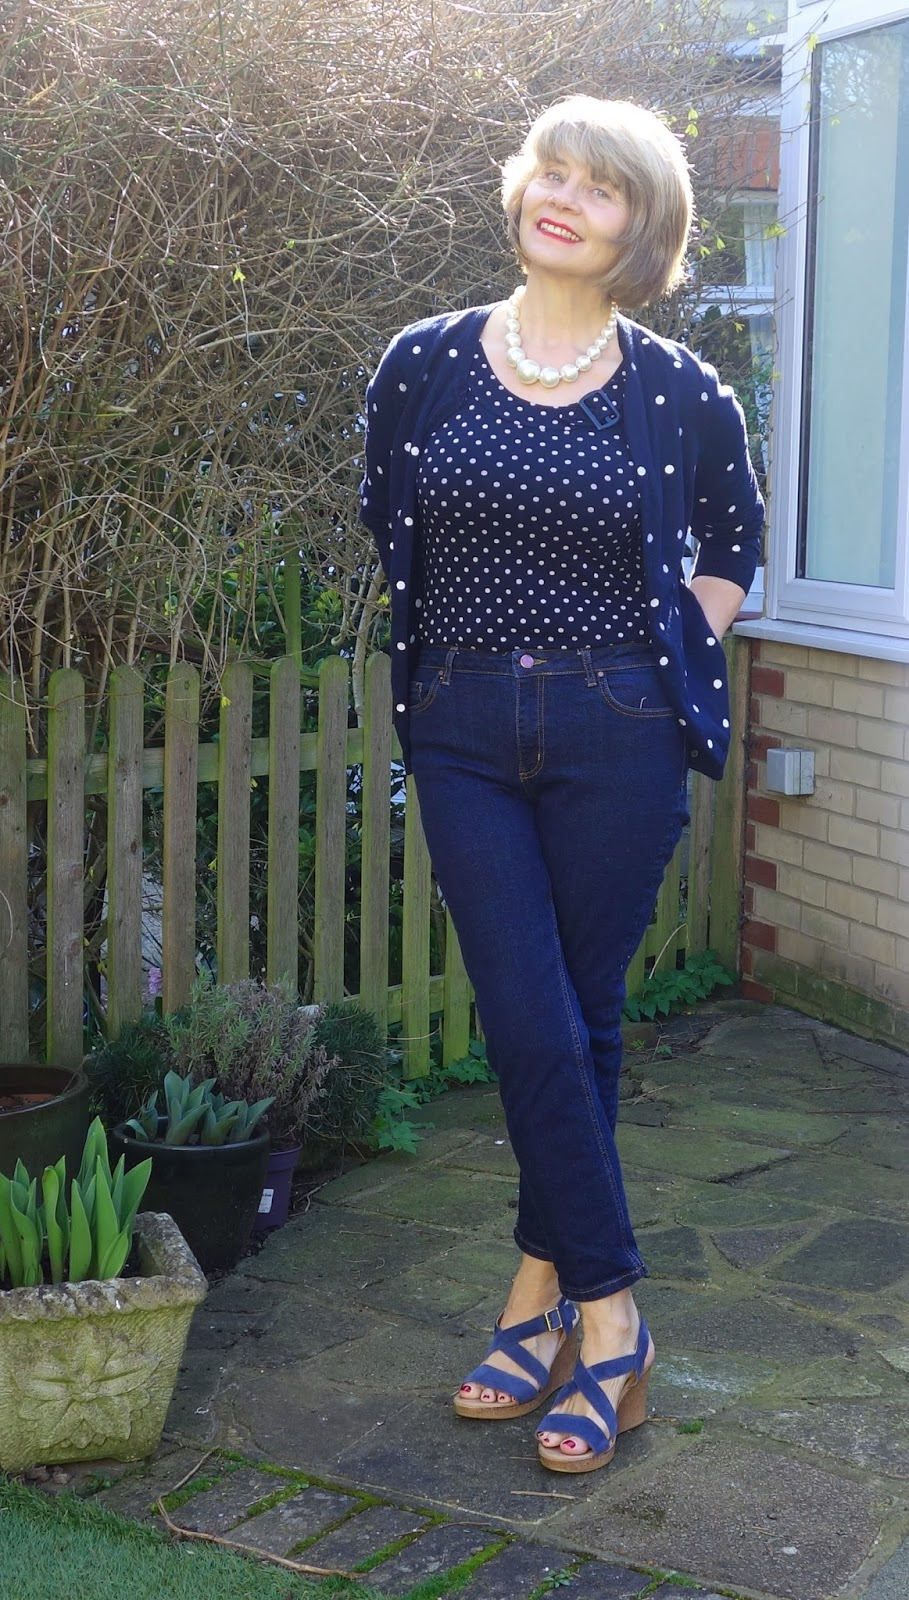 Image showing outfit featuring polka dots: jeans, cardi, wedge heels, pearls.